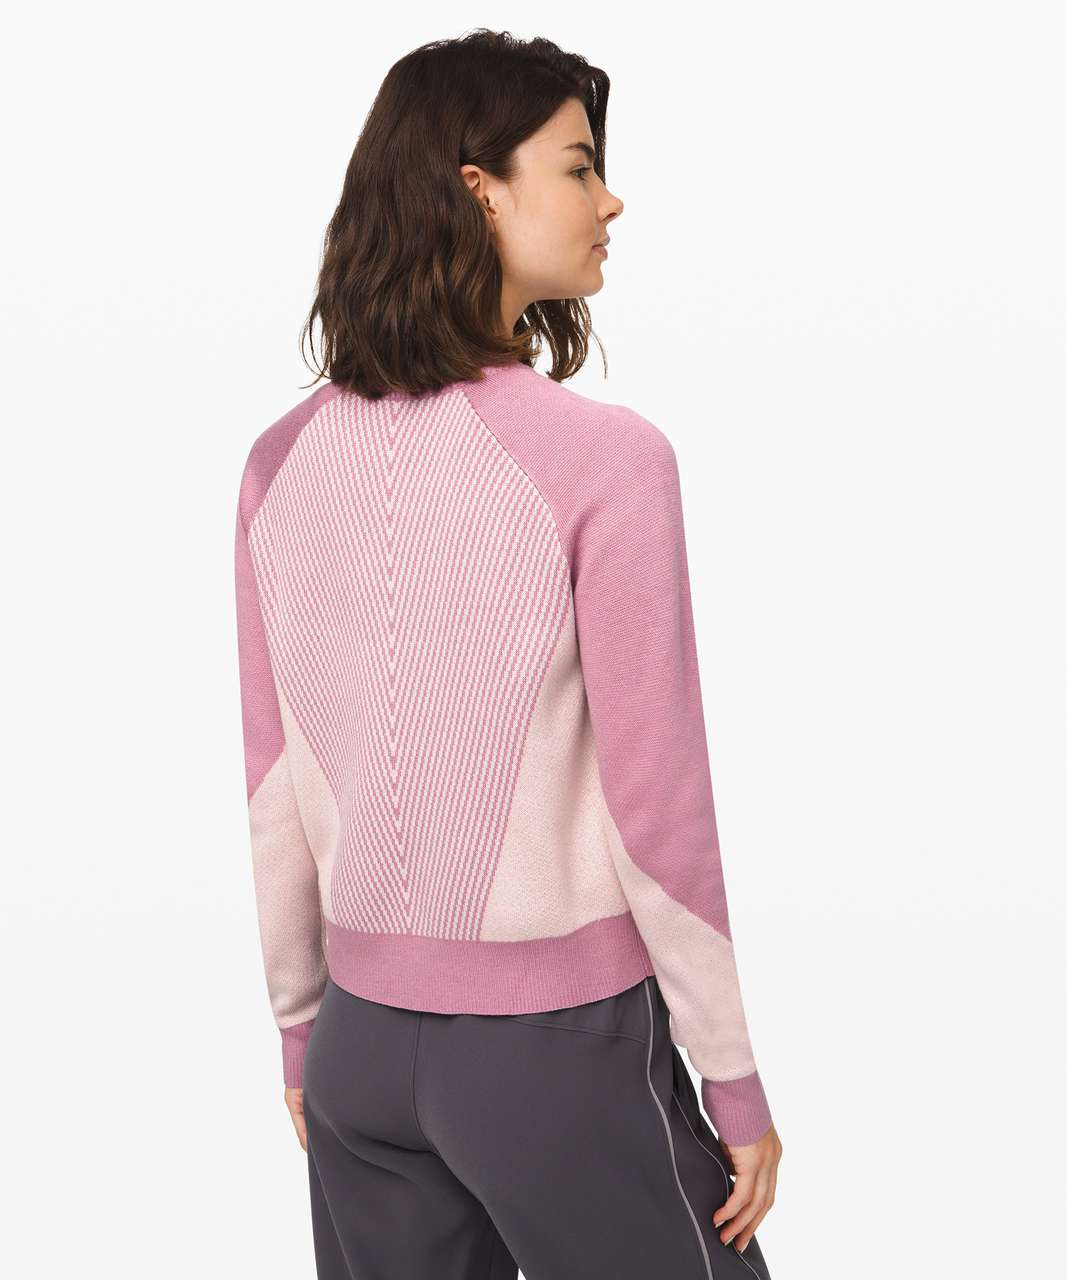 Lululemon Here for Serenity Sweater - Pink Taupe / Light Chrome / Pink Bliss